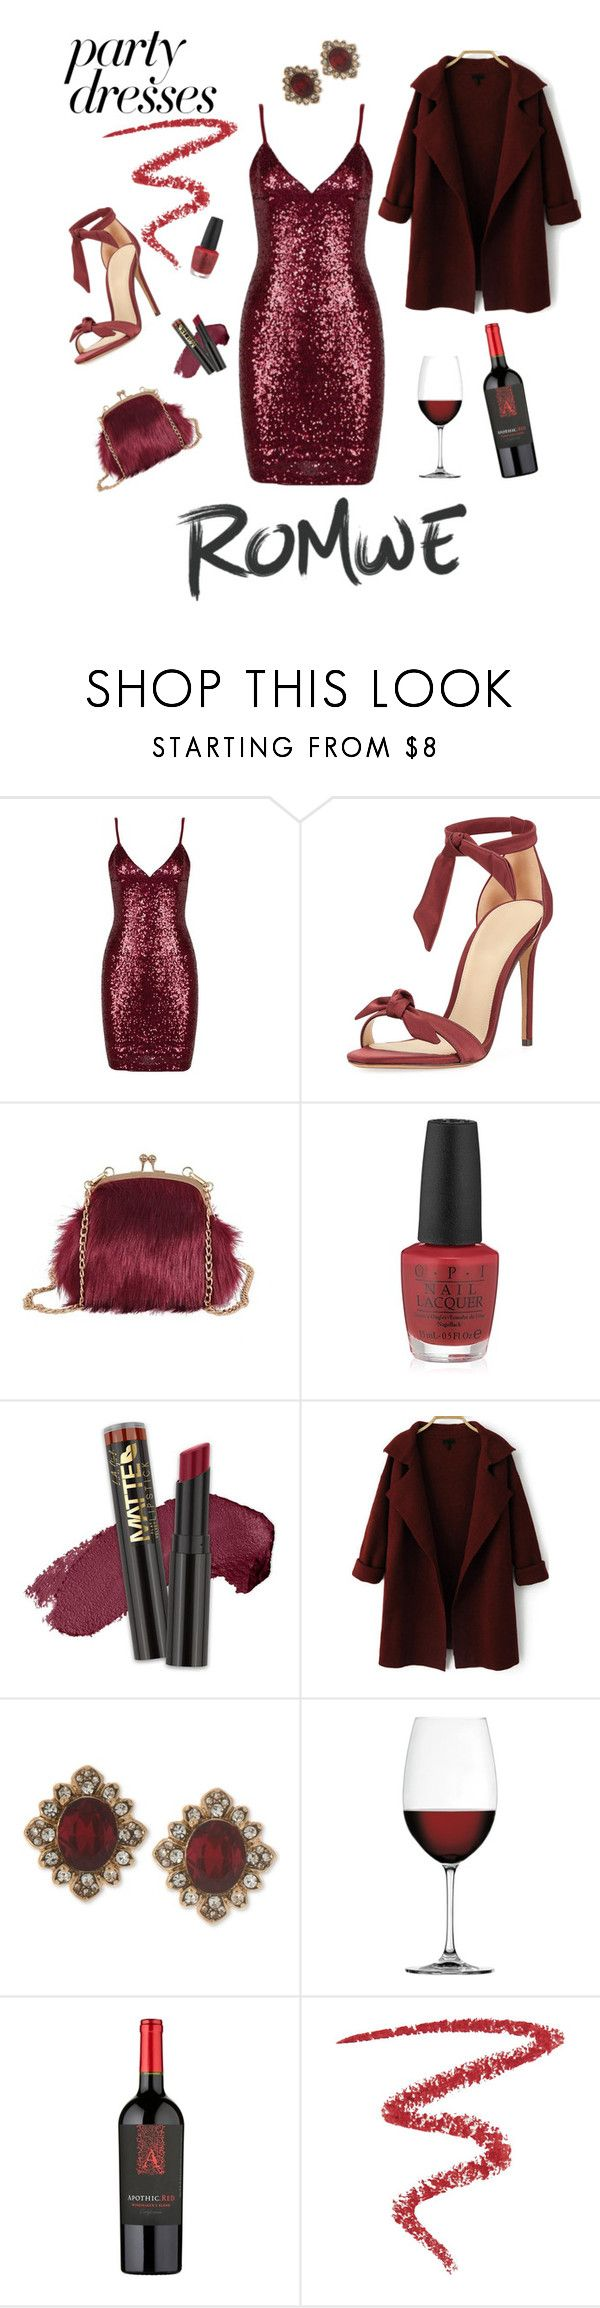 """Wine me baby!!"" by nashalymoe ❤ liked on Polyvore featuring Alexandre Birman, OPI, L.A. Girl, Marchesa, Nachtmann and By Terry"